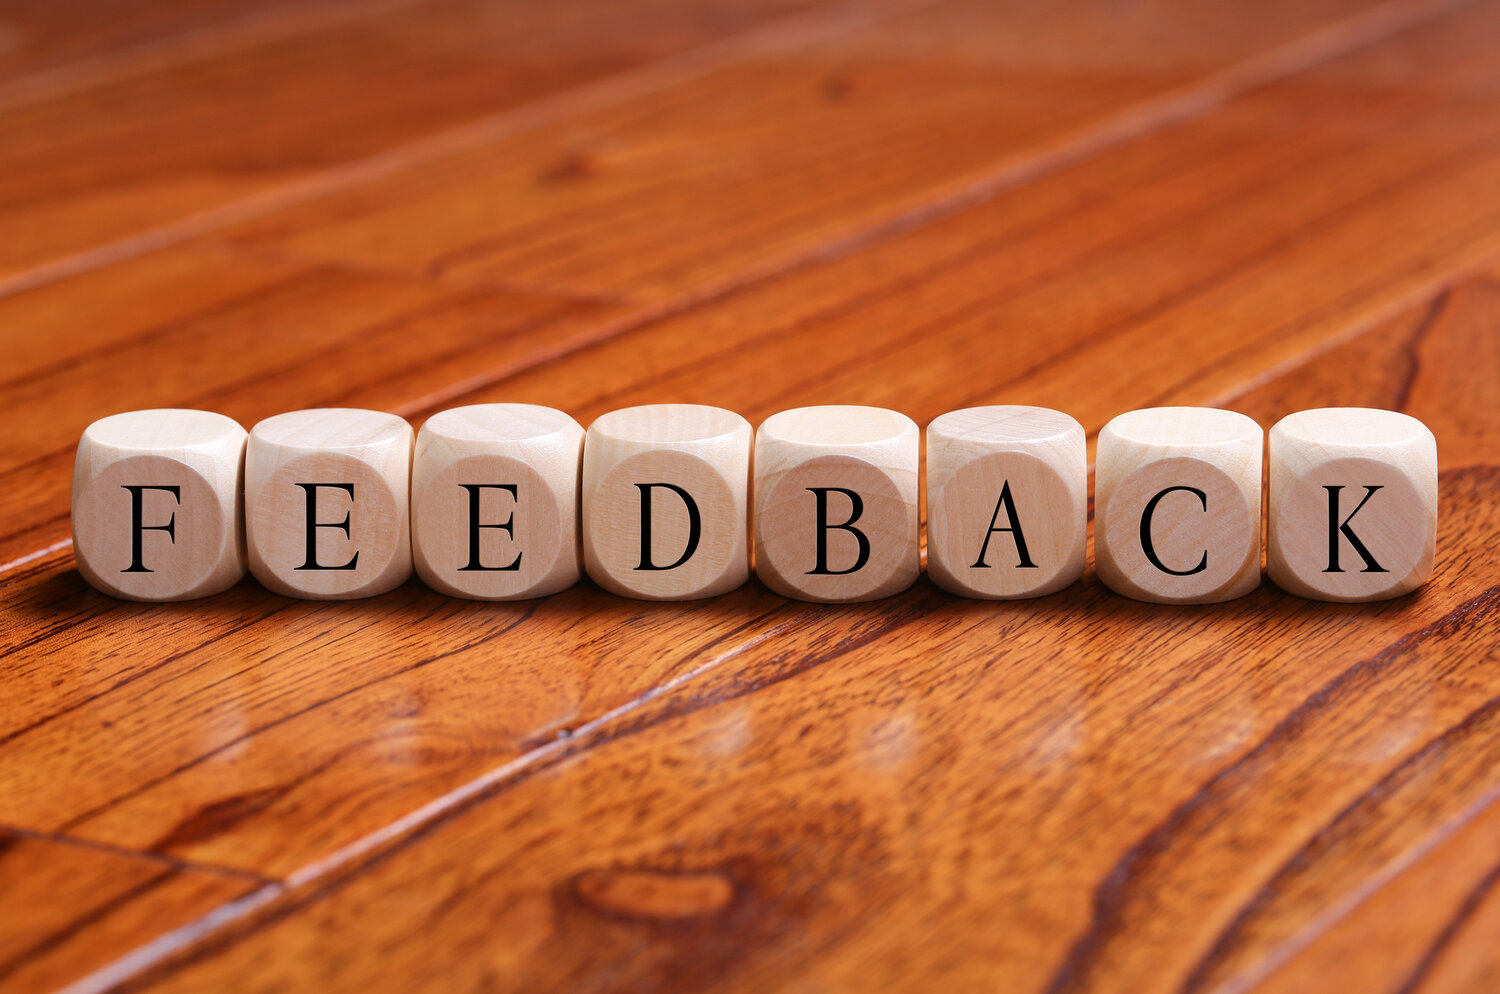 Patient Feedback - Here is a brief summary of what patients have to say.